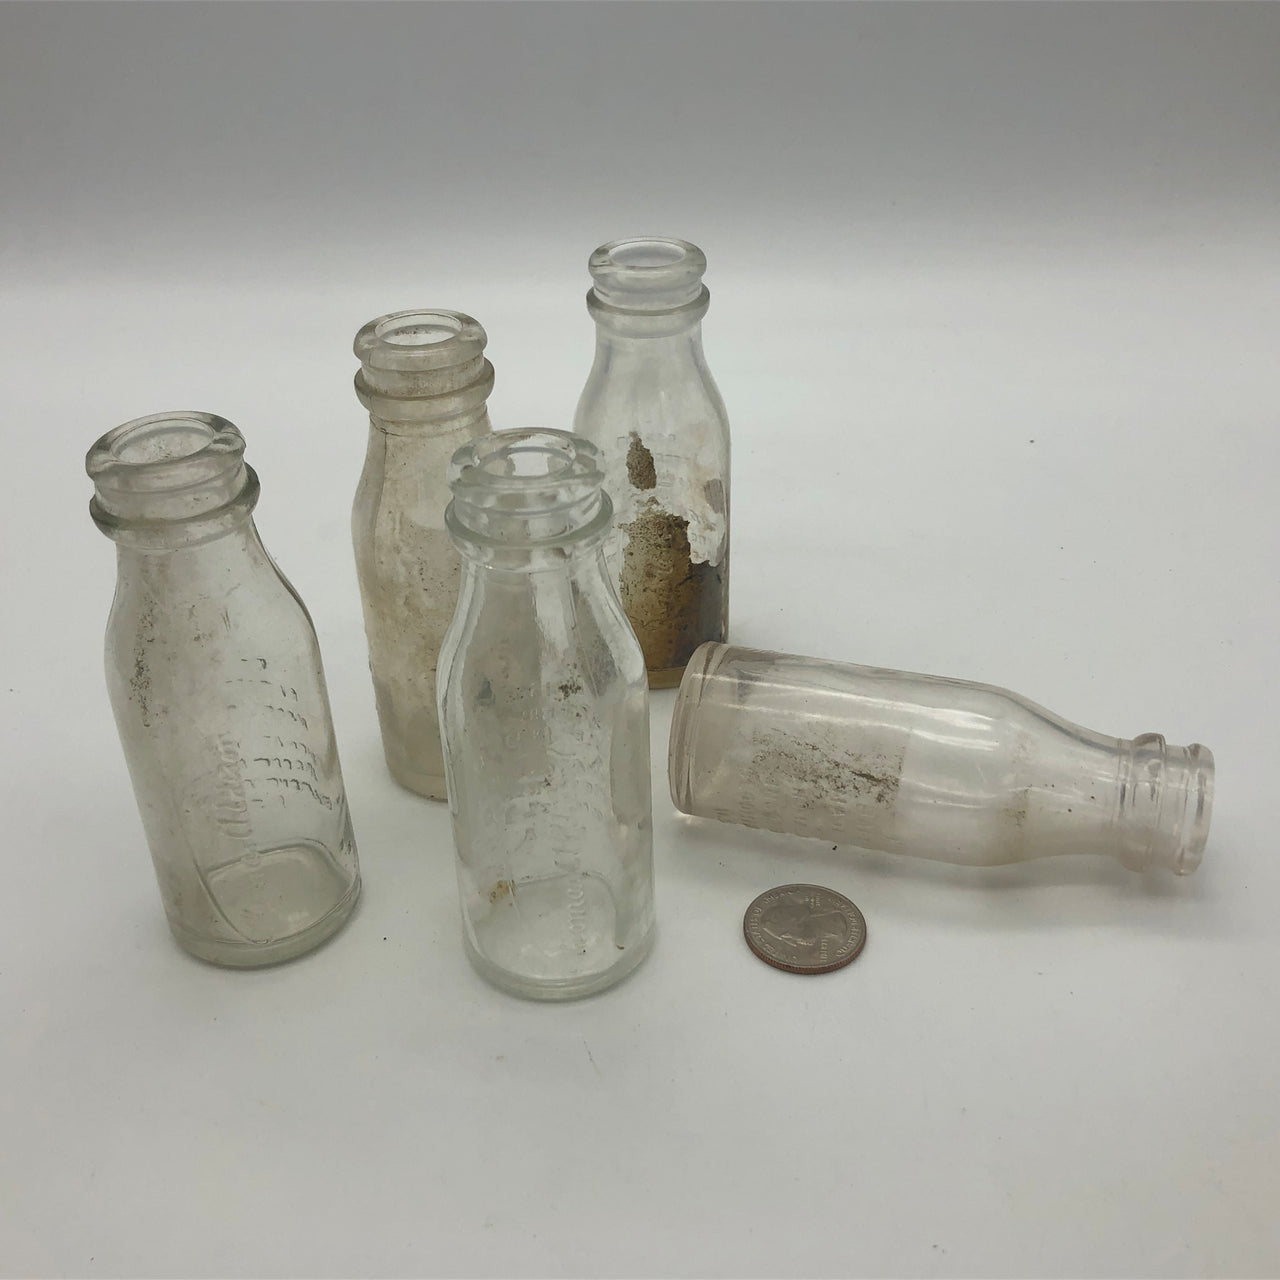 Vintage Glass Thomas A Edison Battery Oil Bottles Lot of 5 Bloomfield NJ